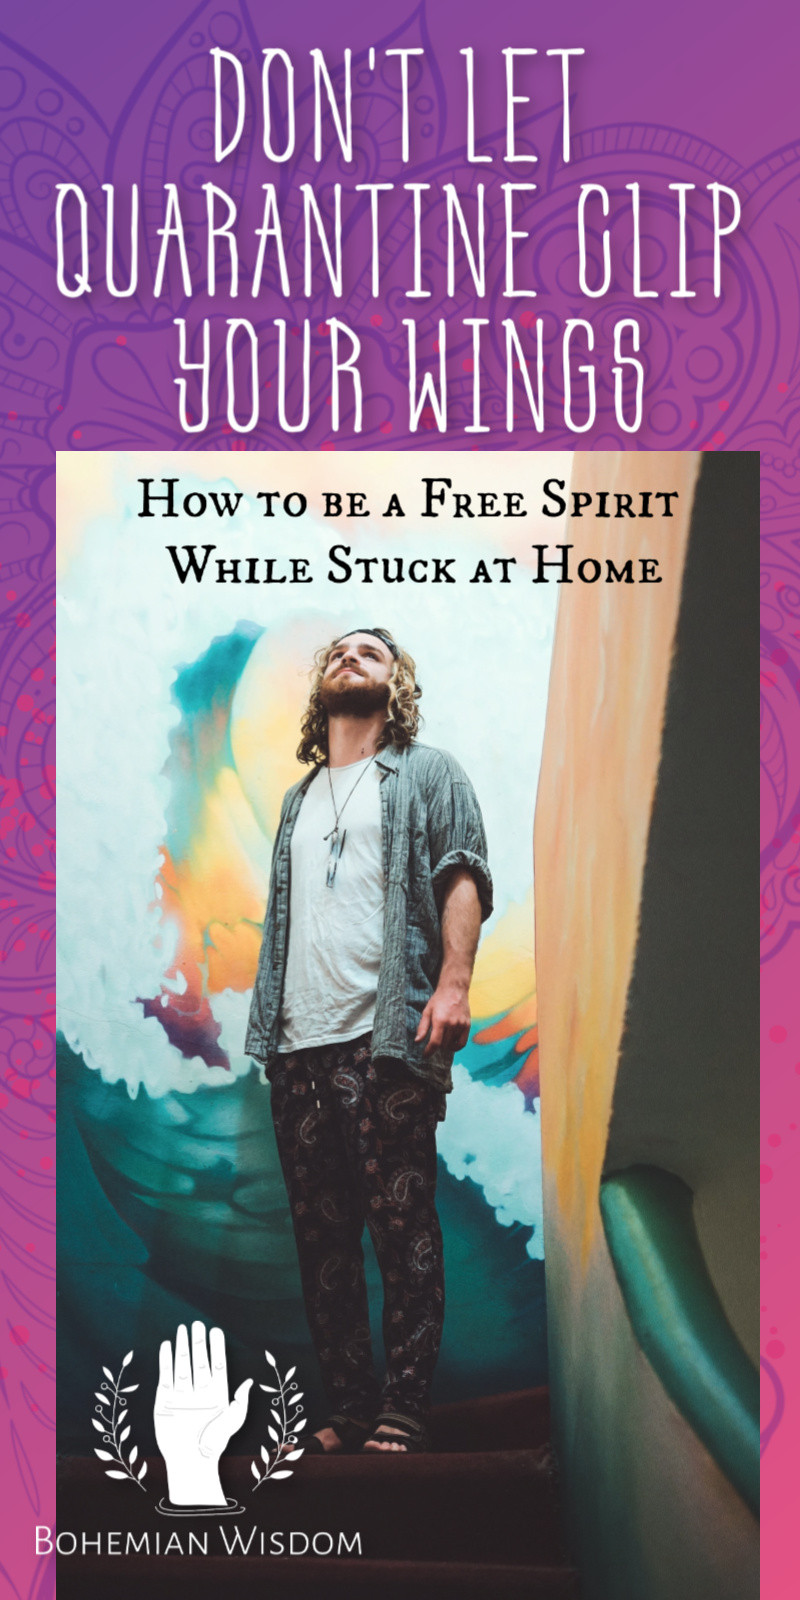 Don't Let Quarantine Clip Your Wings: How to be a Free Spirit While Stuck at Home. What to do in quarantine | Bohemian lifestyle. How to have fun in quarantine. Things To Do While Stuck At Home During The Coronavirus Quarantine